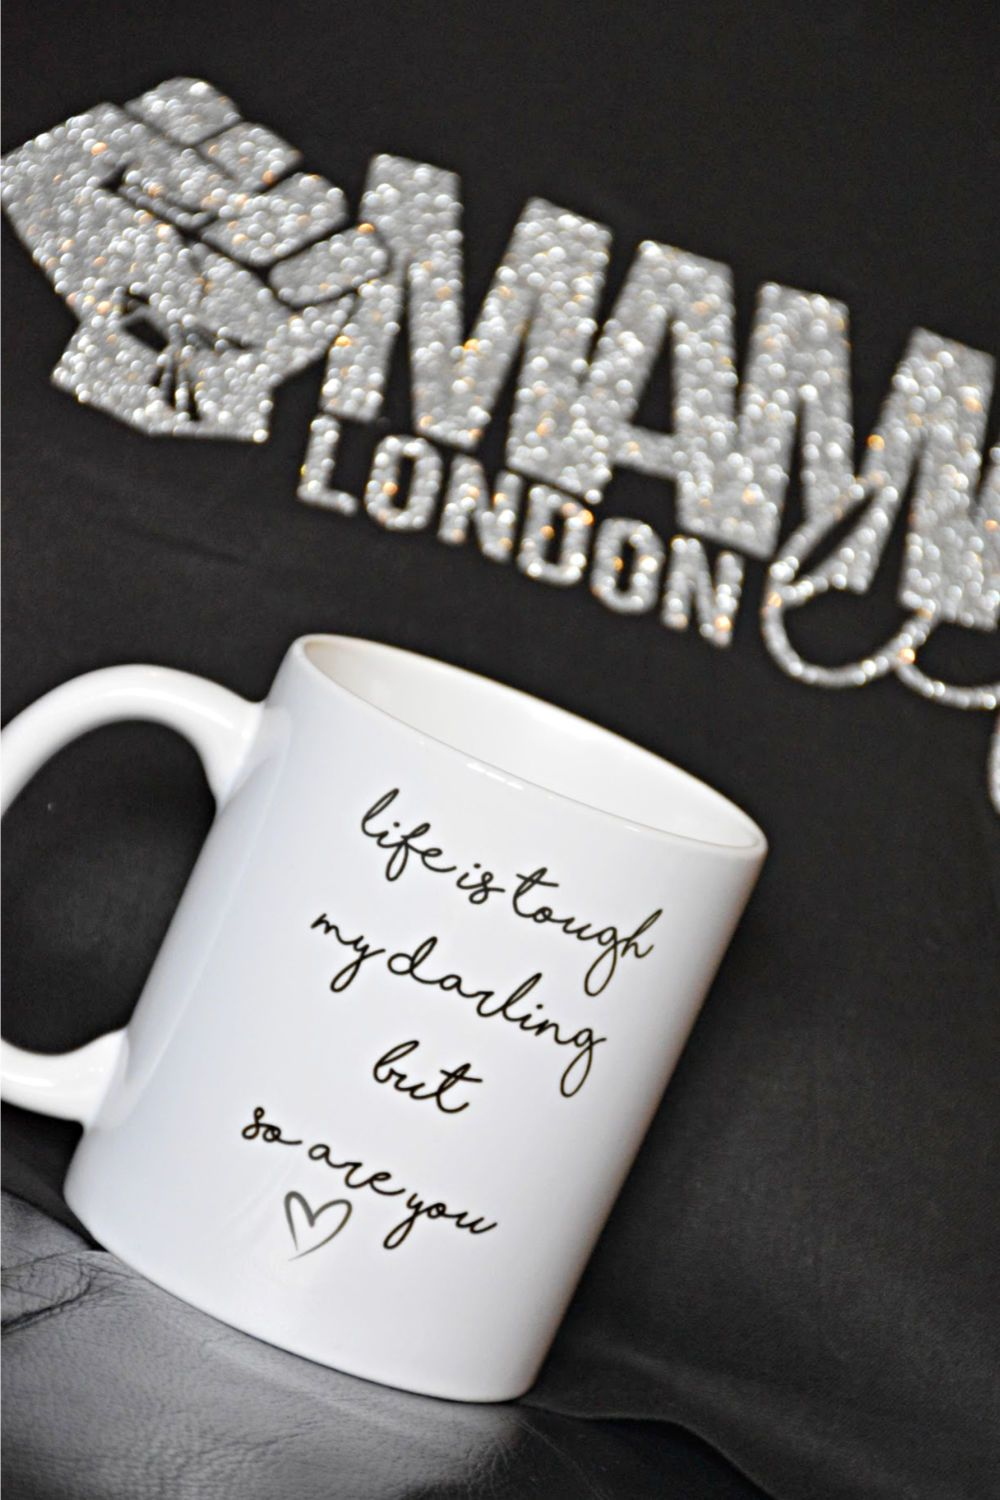 Life is tough my darling but so are you mug by Mama Life London